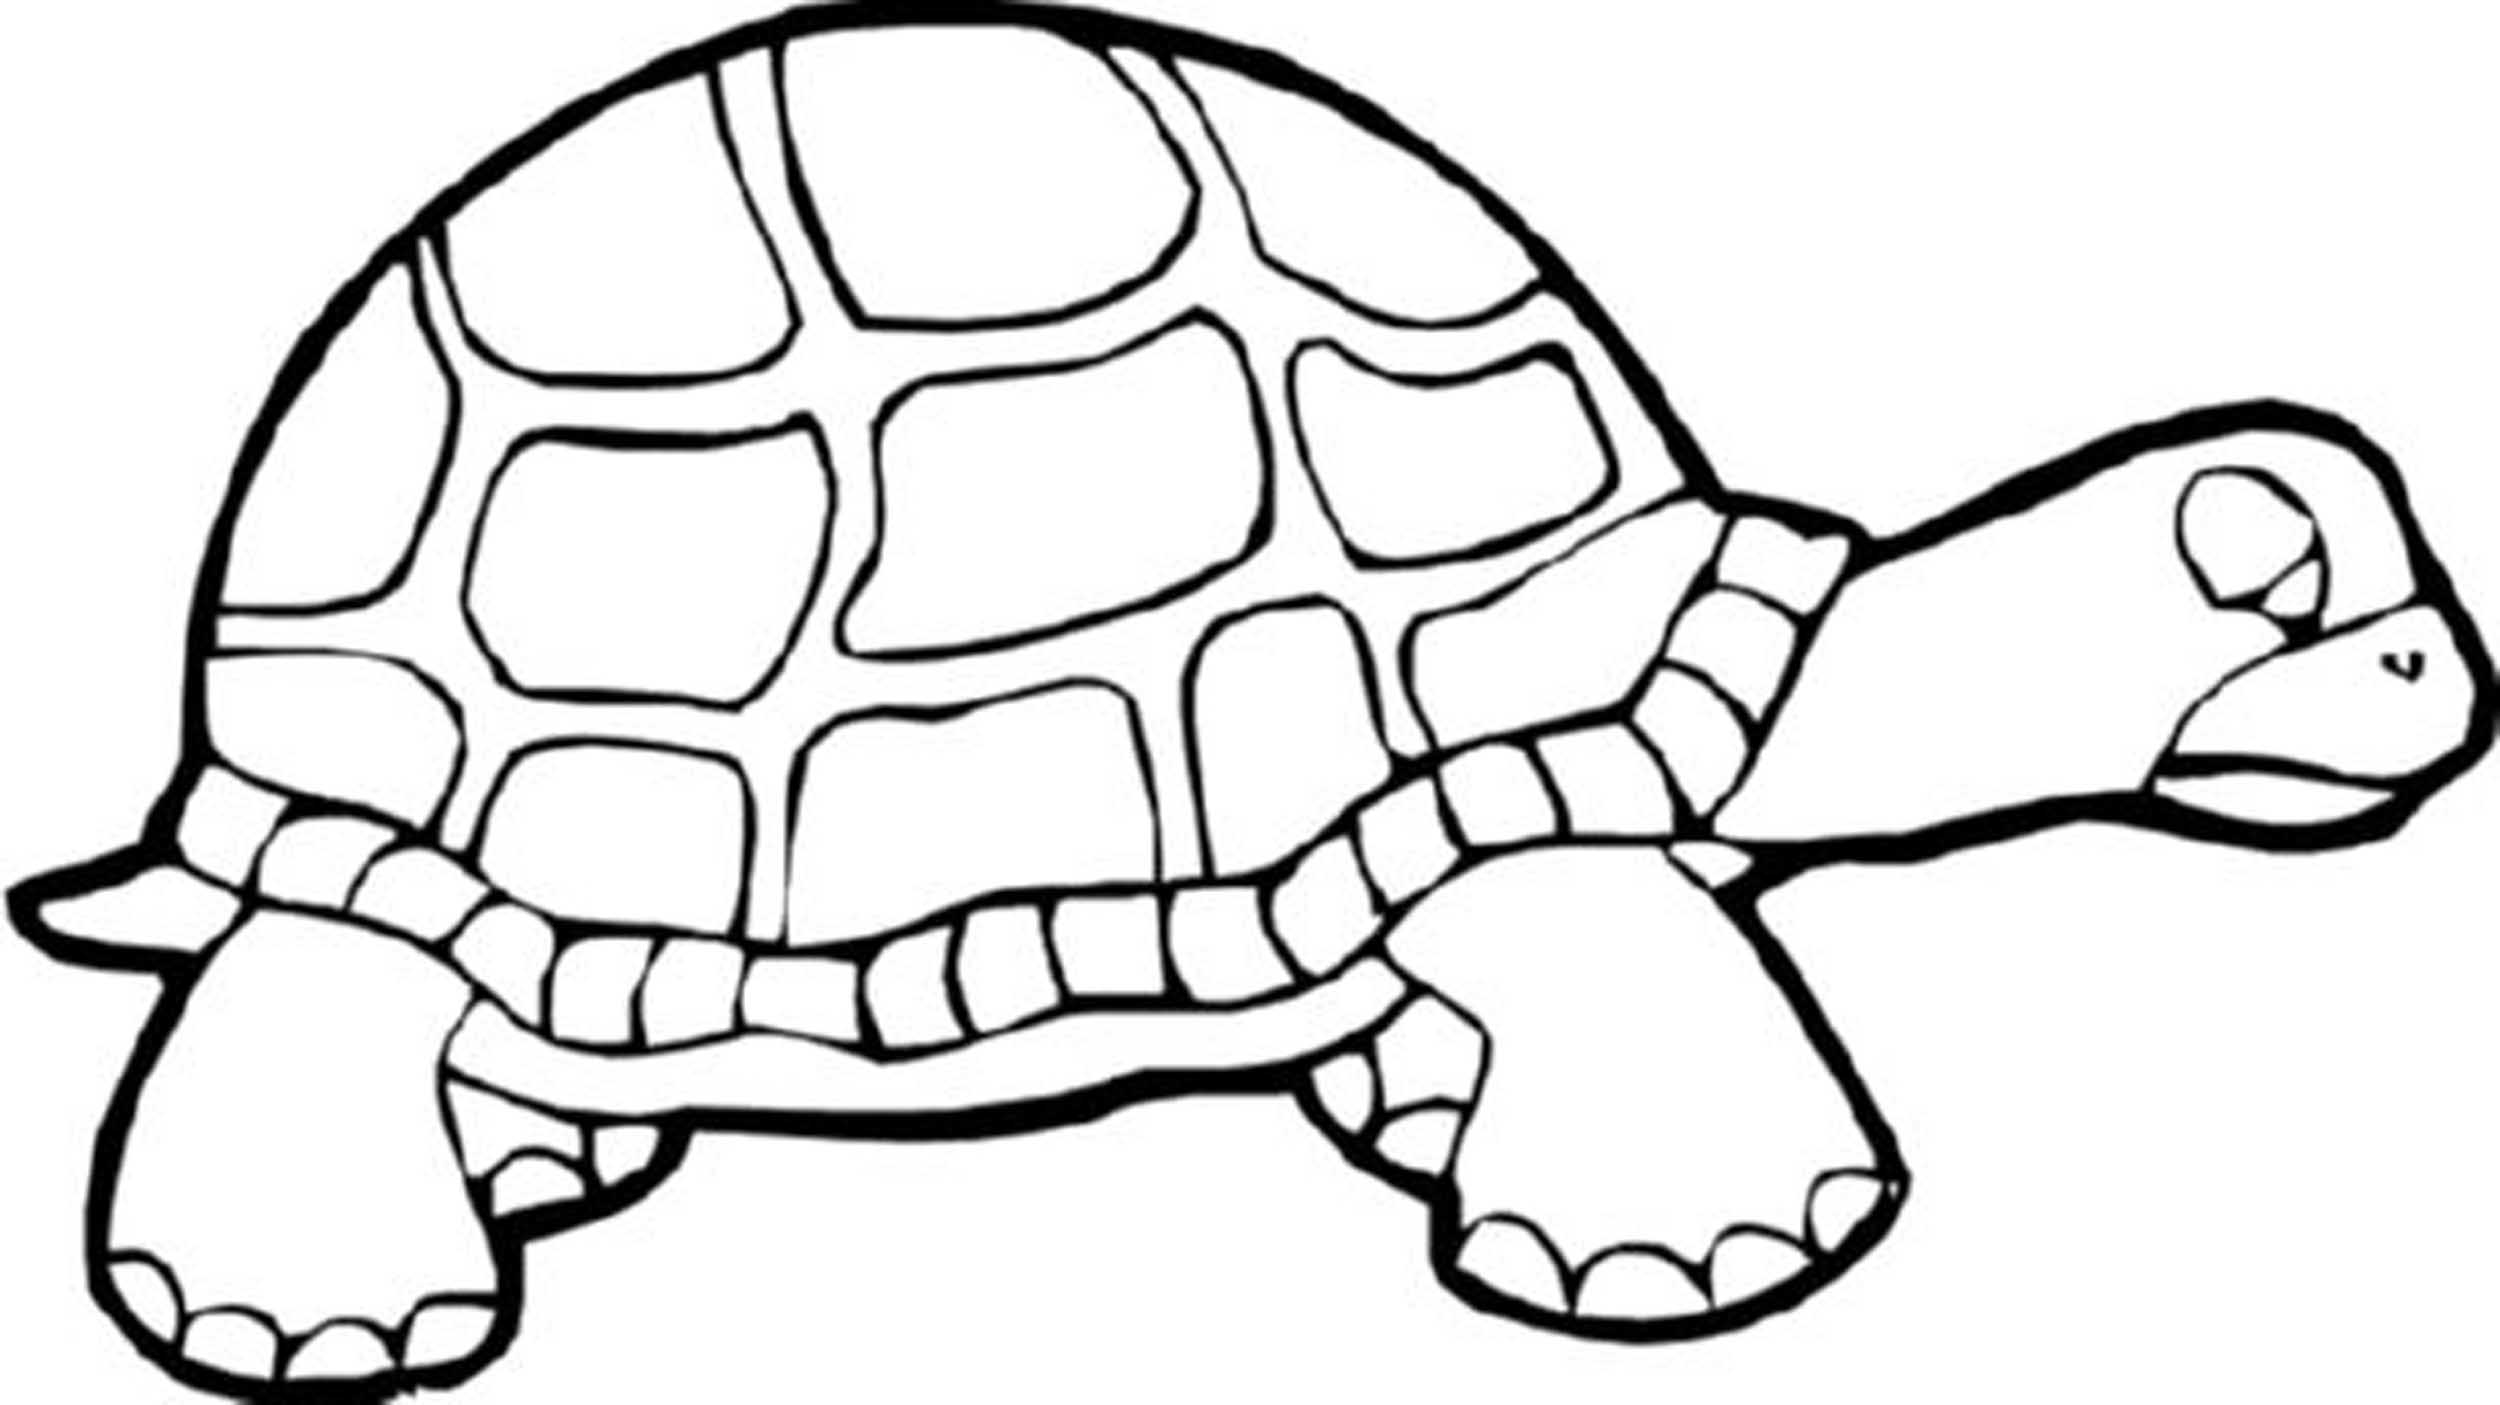 turtle coloring pictures coloring pages turtles free printable coloring pages coloring pictures turtle